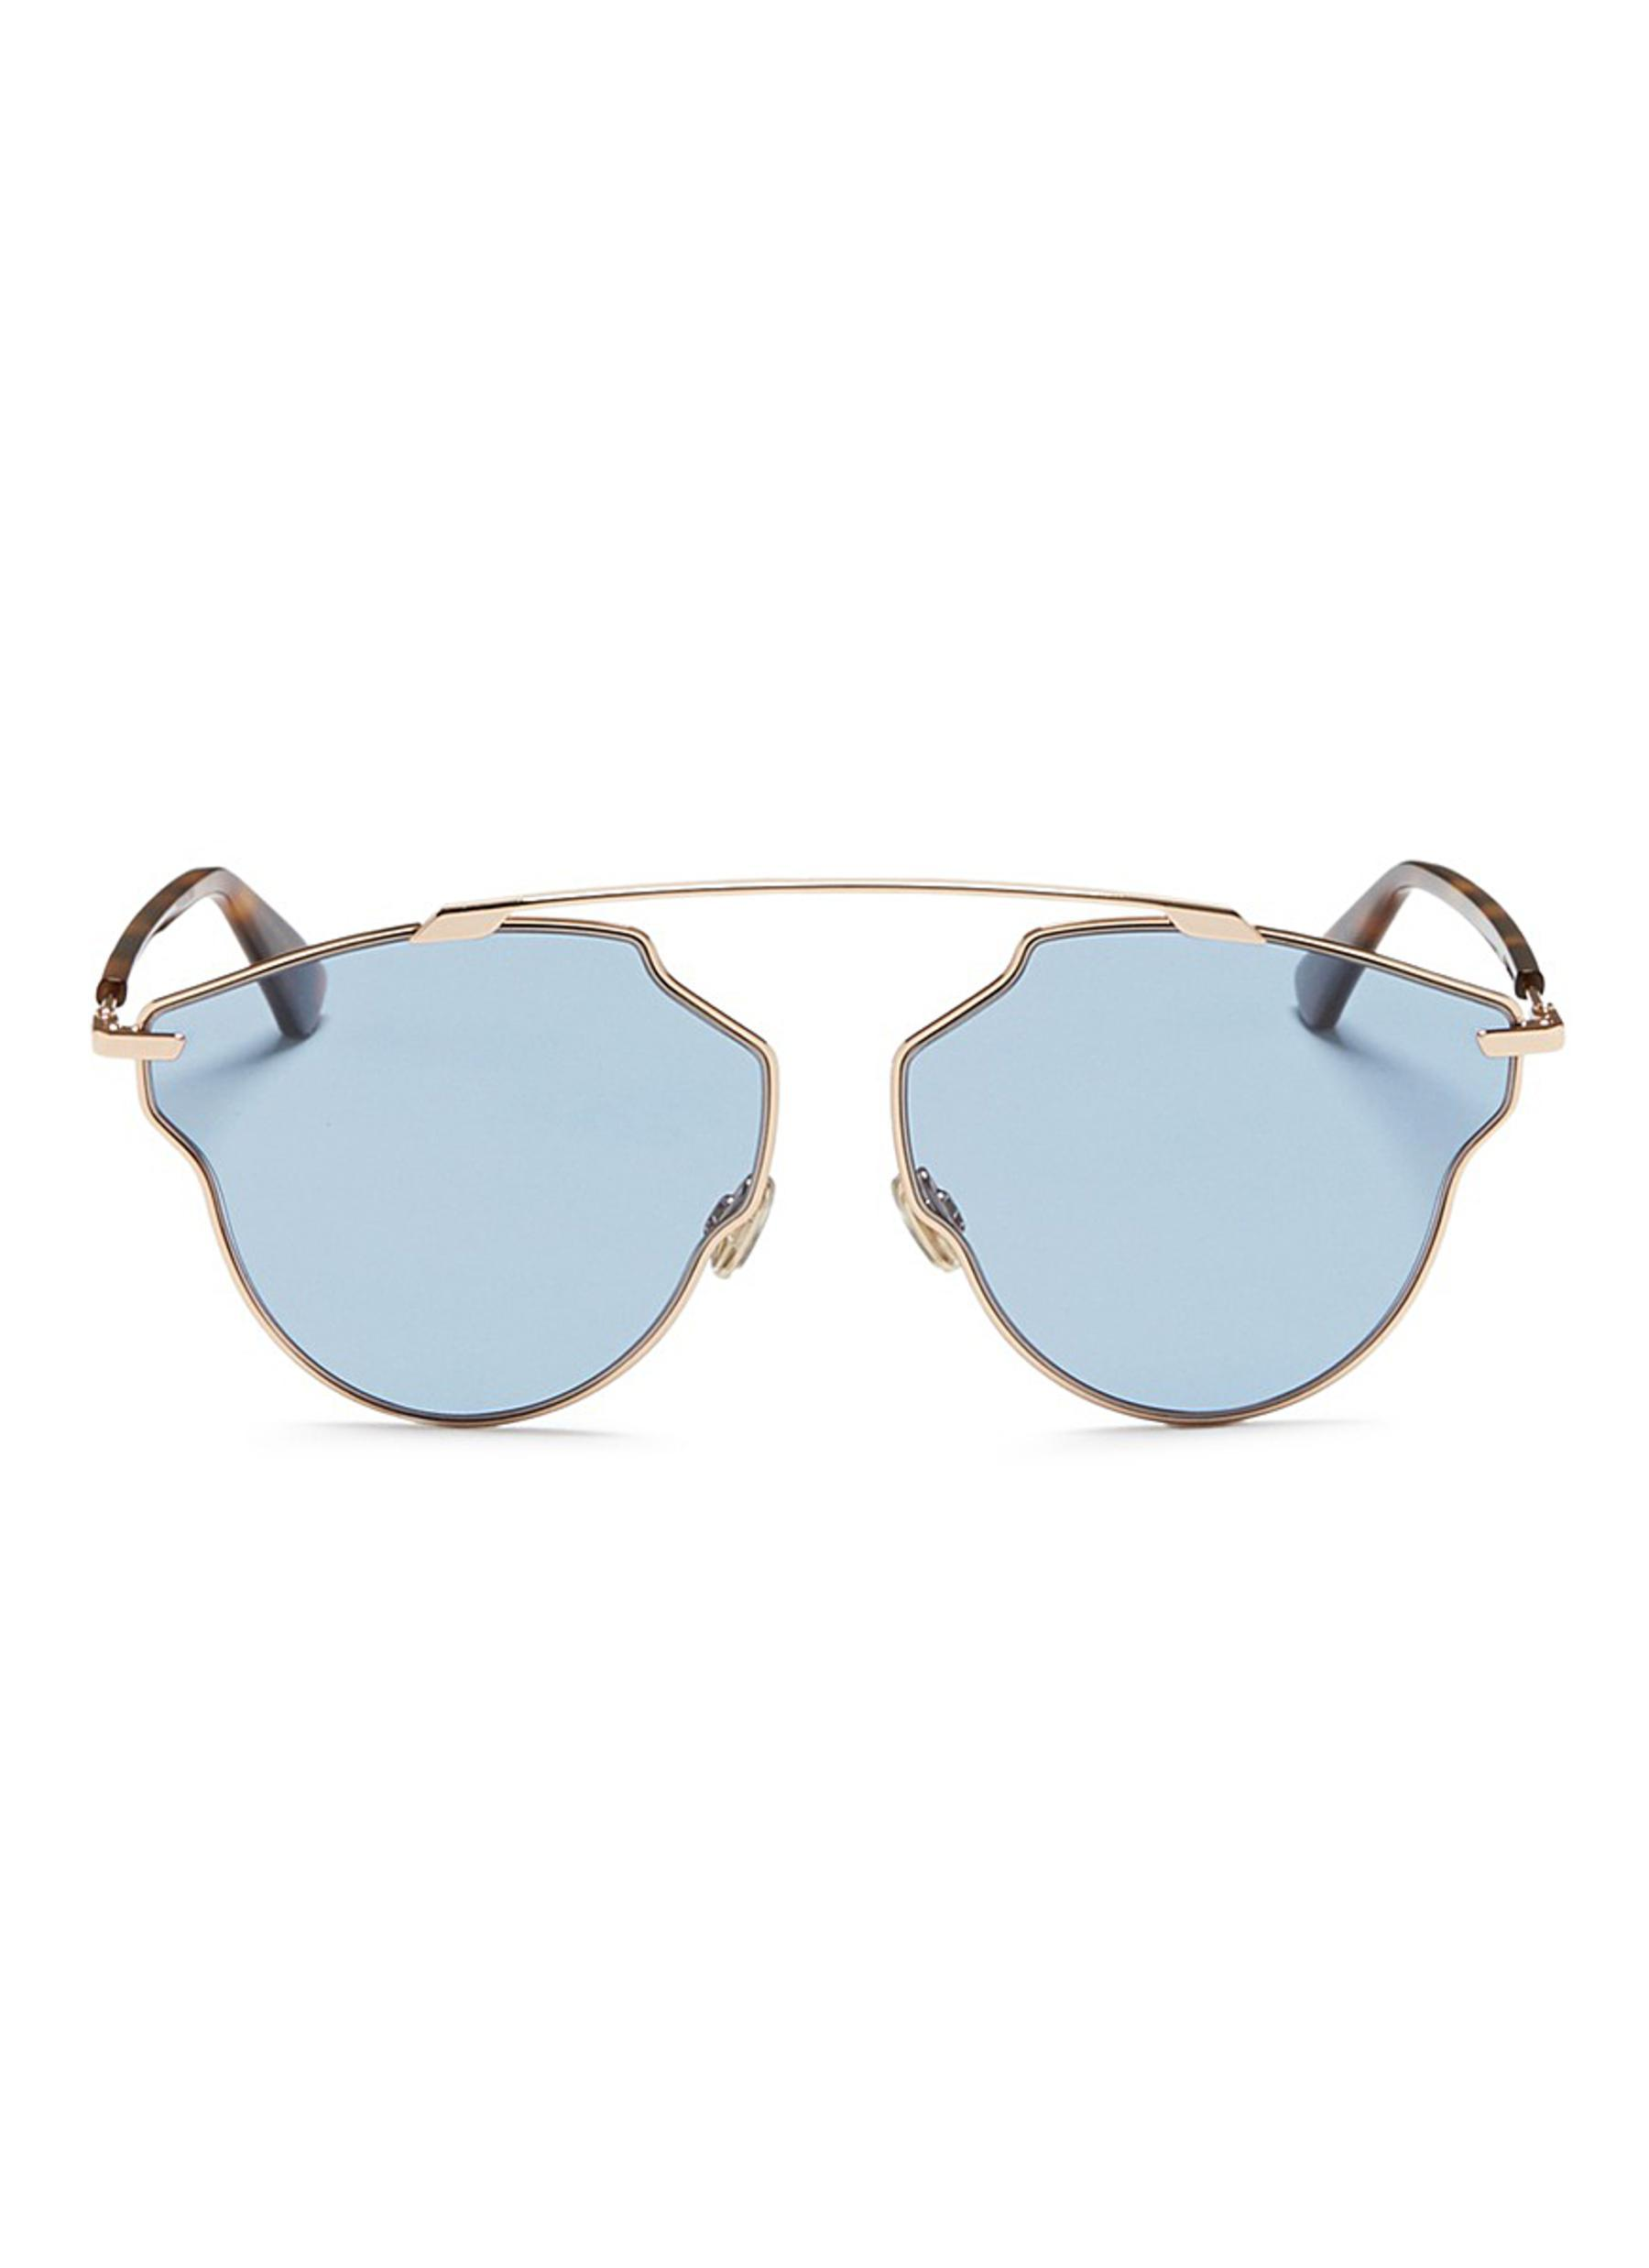 608af009ed7 Dior   So Real Pop  Panto Sunglasses in Blue - Lyst